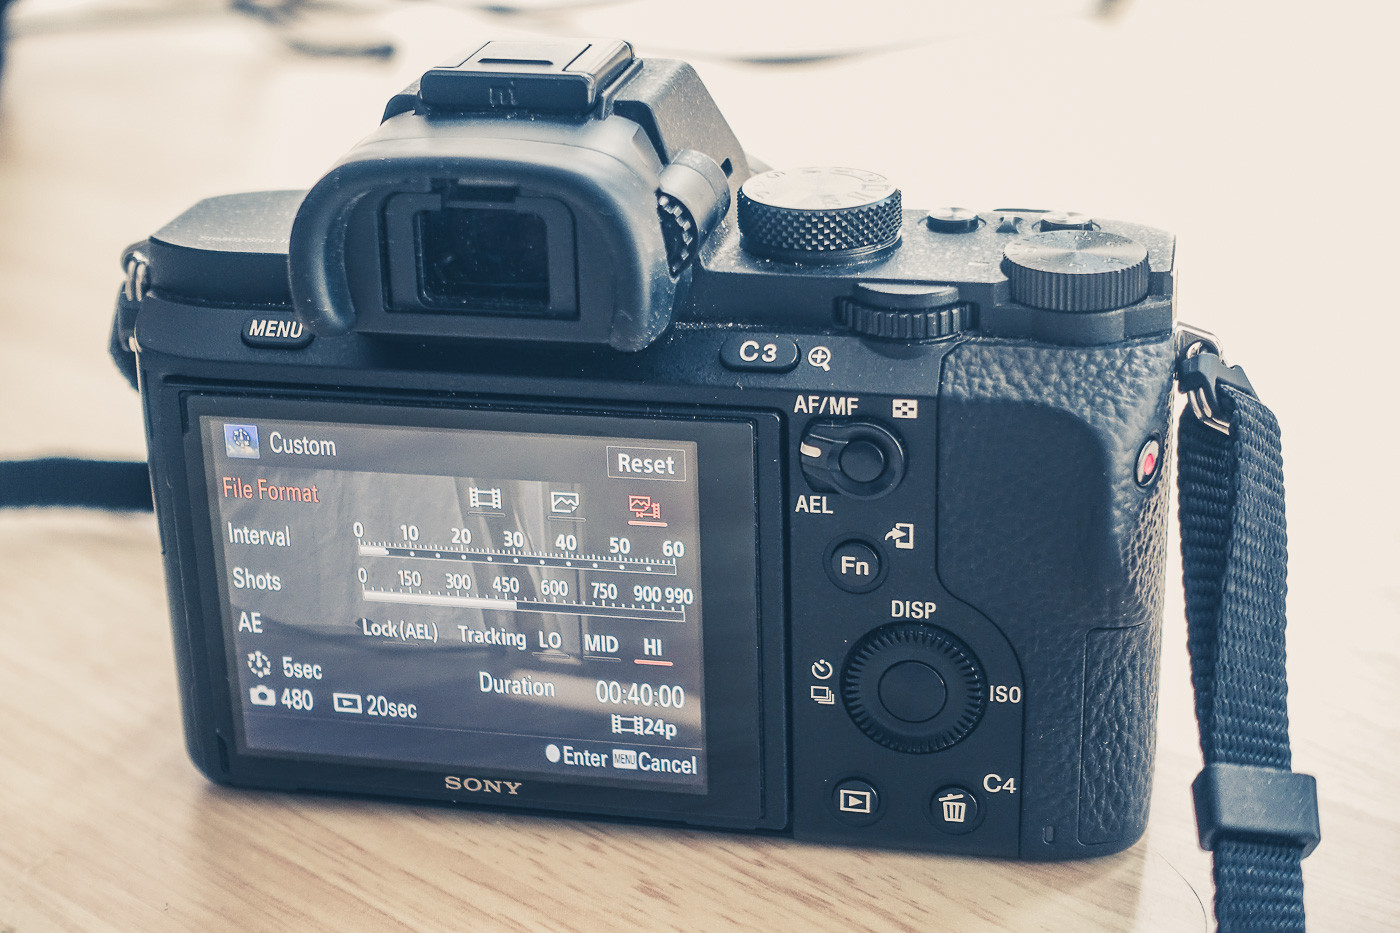 Sony a7II: A Real World Review | The Photon Collective